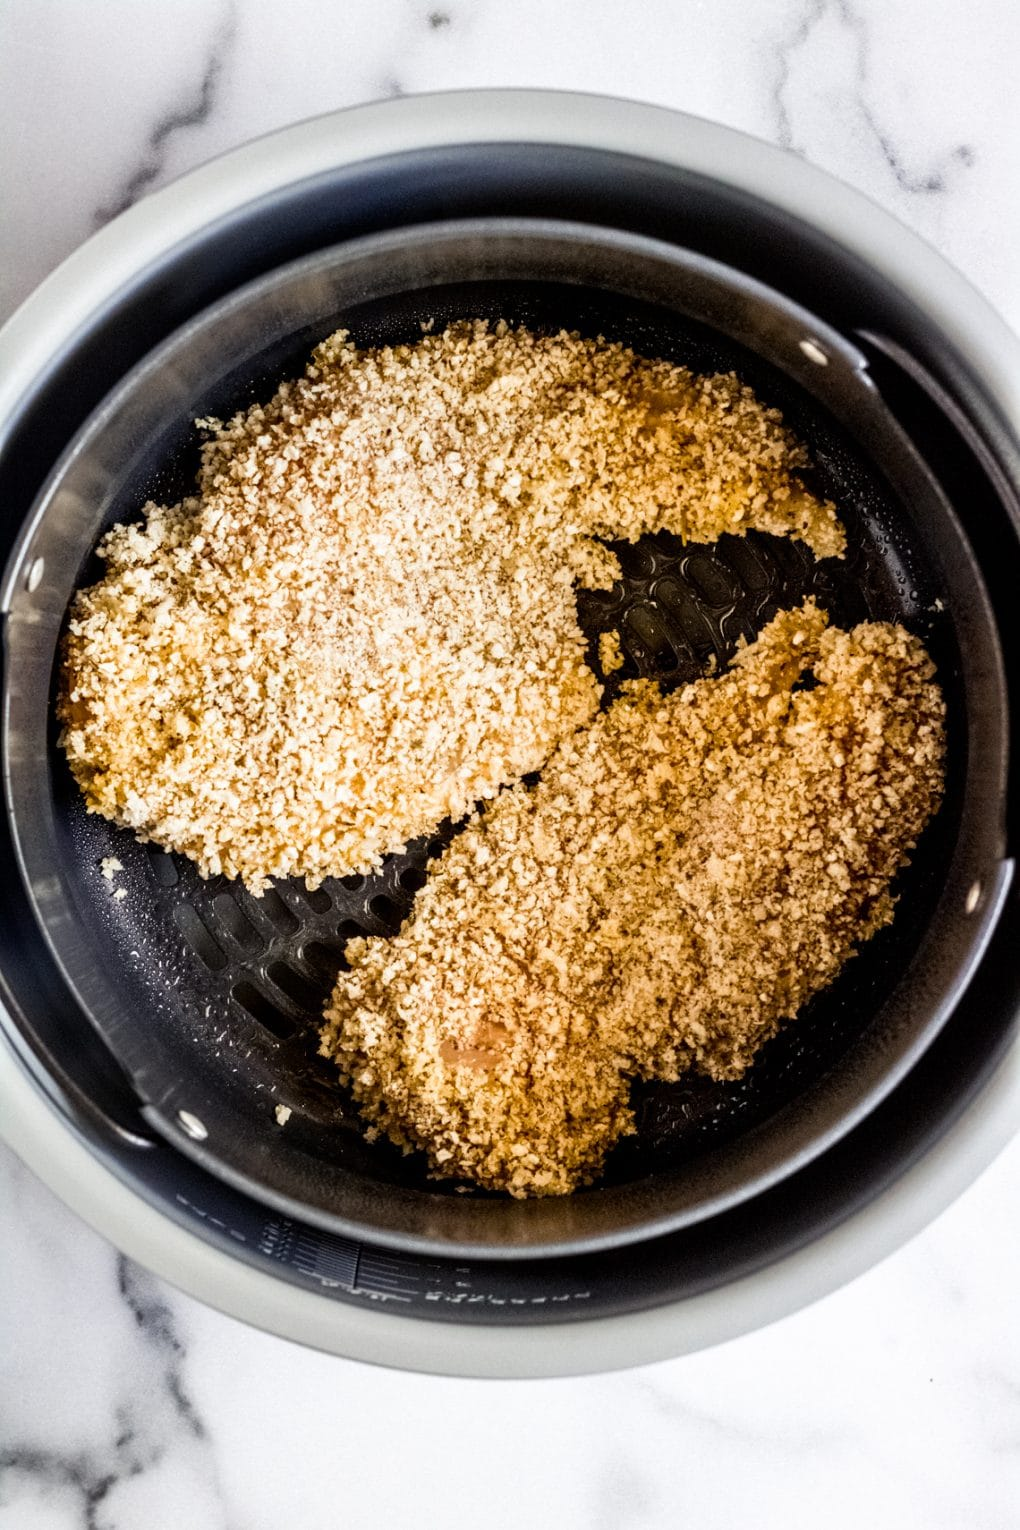 two breaded chicken breasts in an air fryer basket